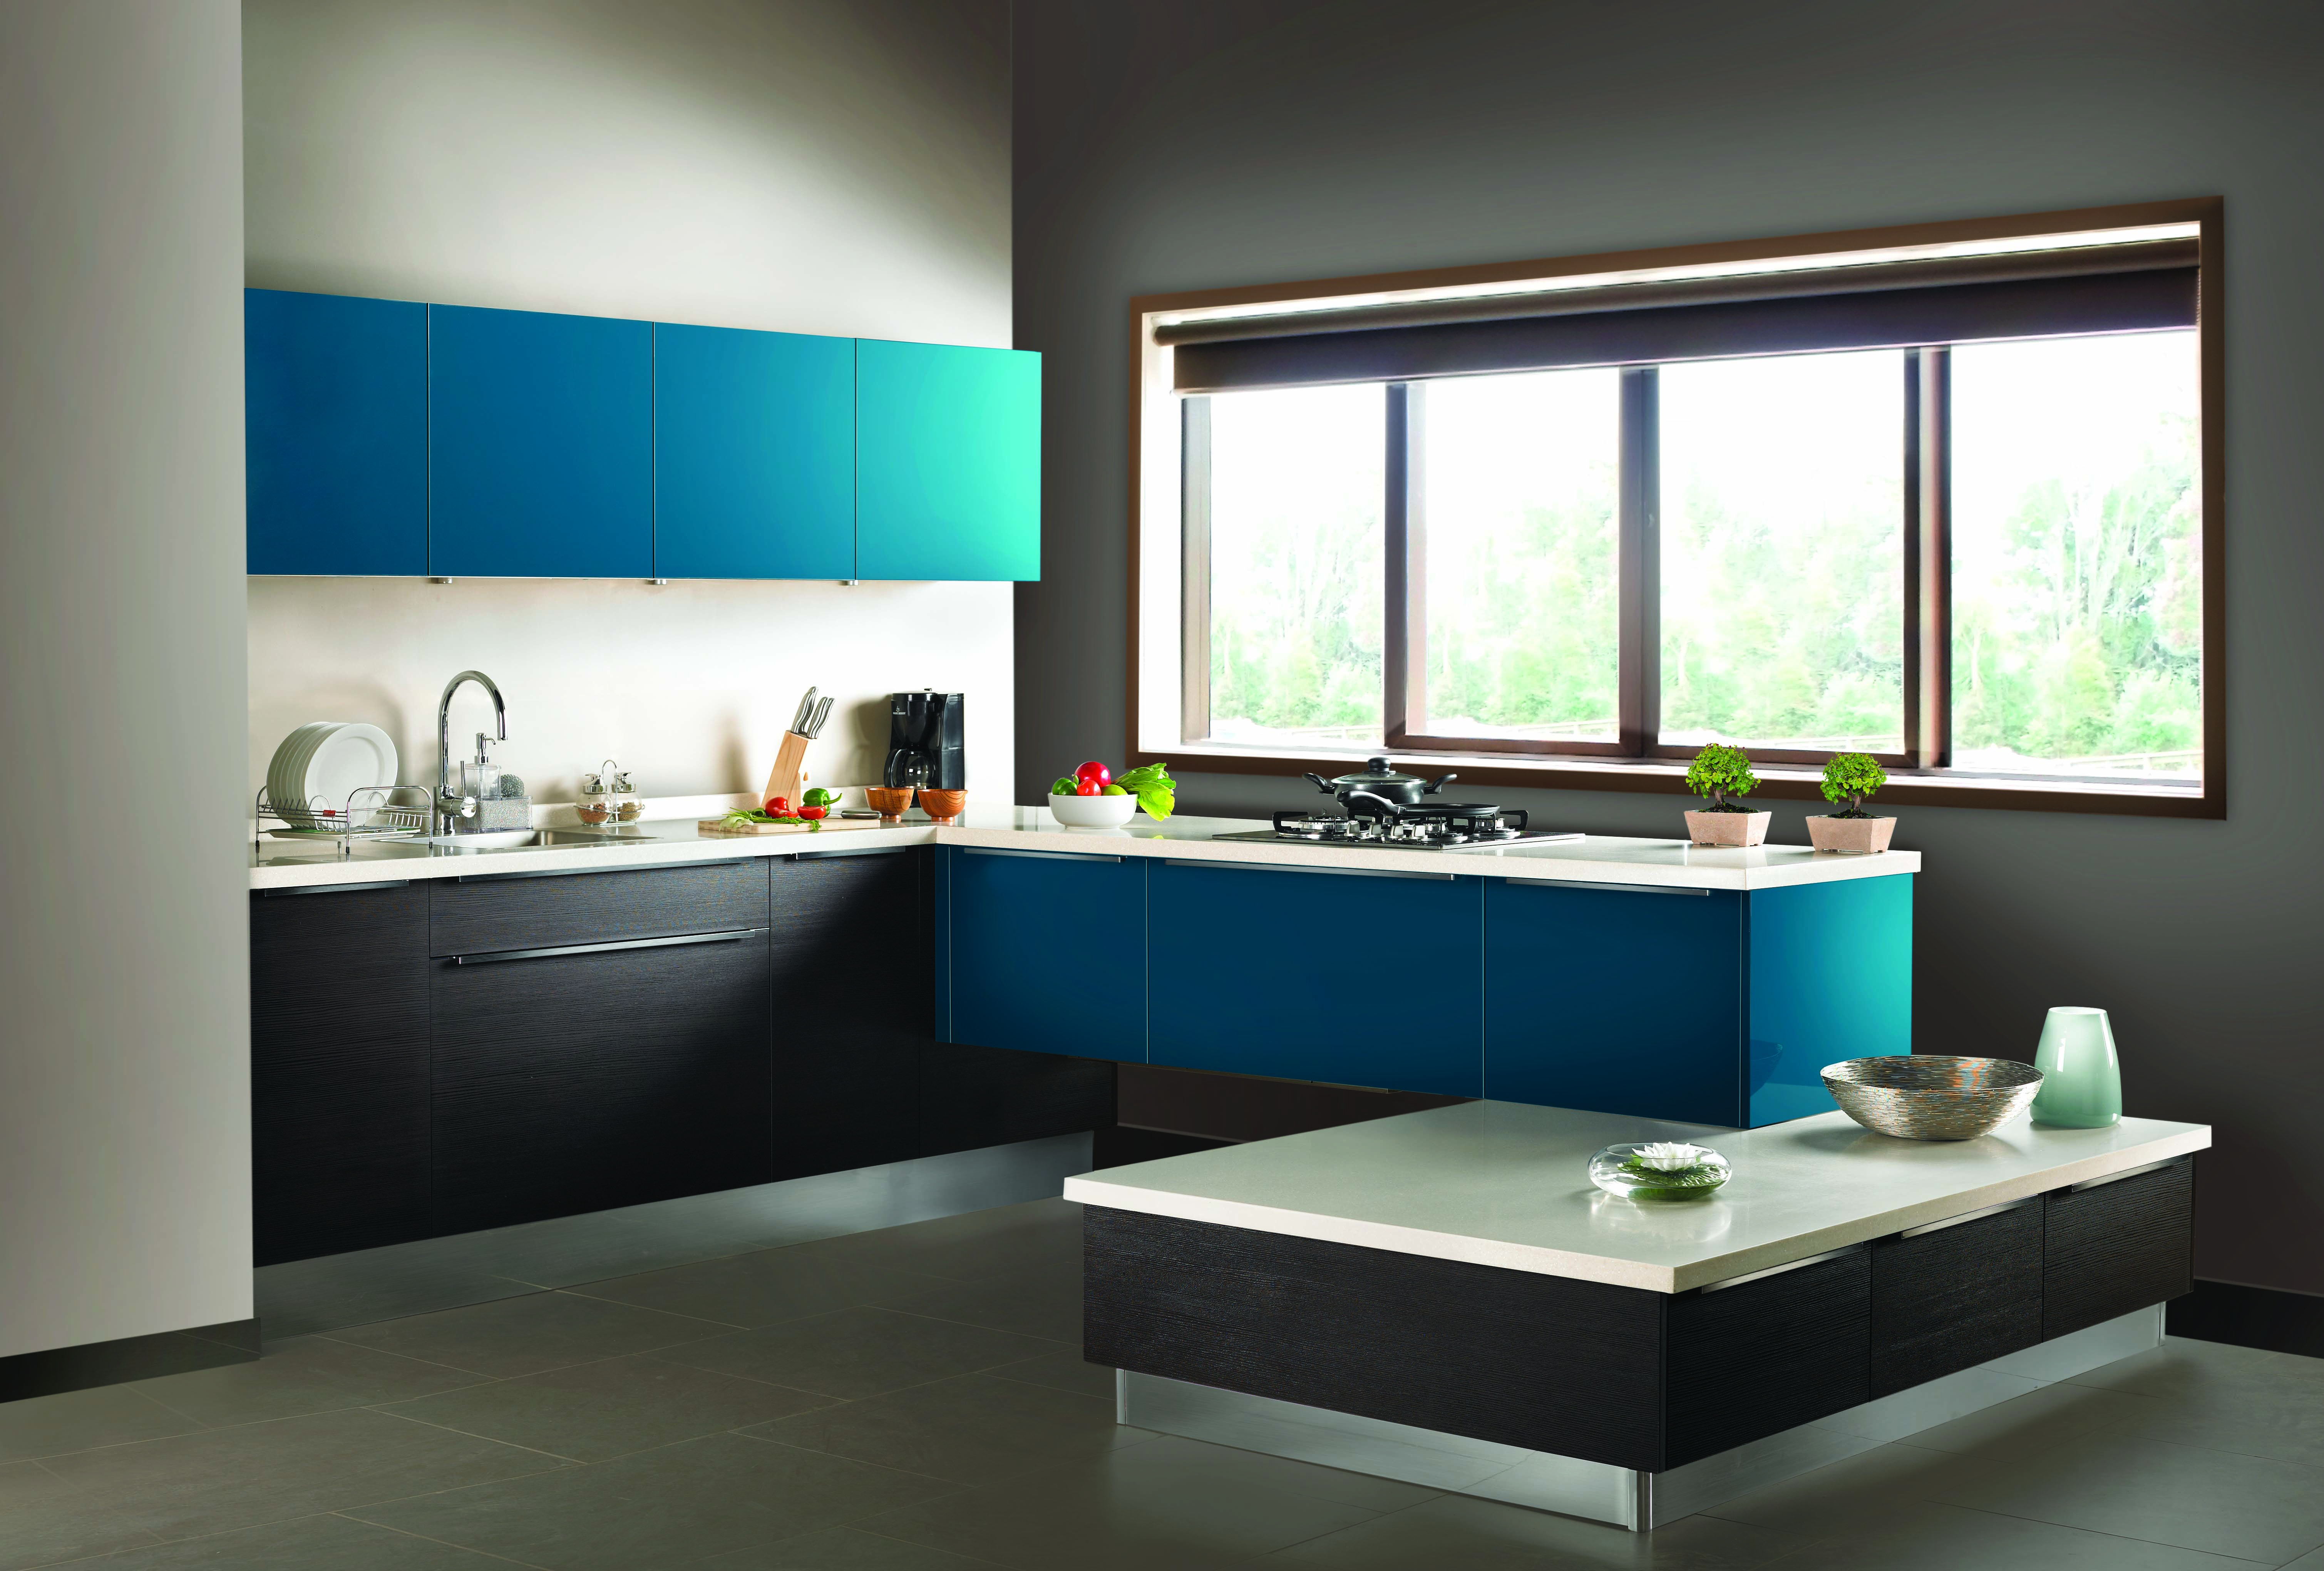 Delicieux SLEEK Modular Kitchens Http://www.sleekkitchens.com/modular Kitchen